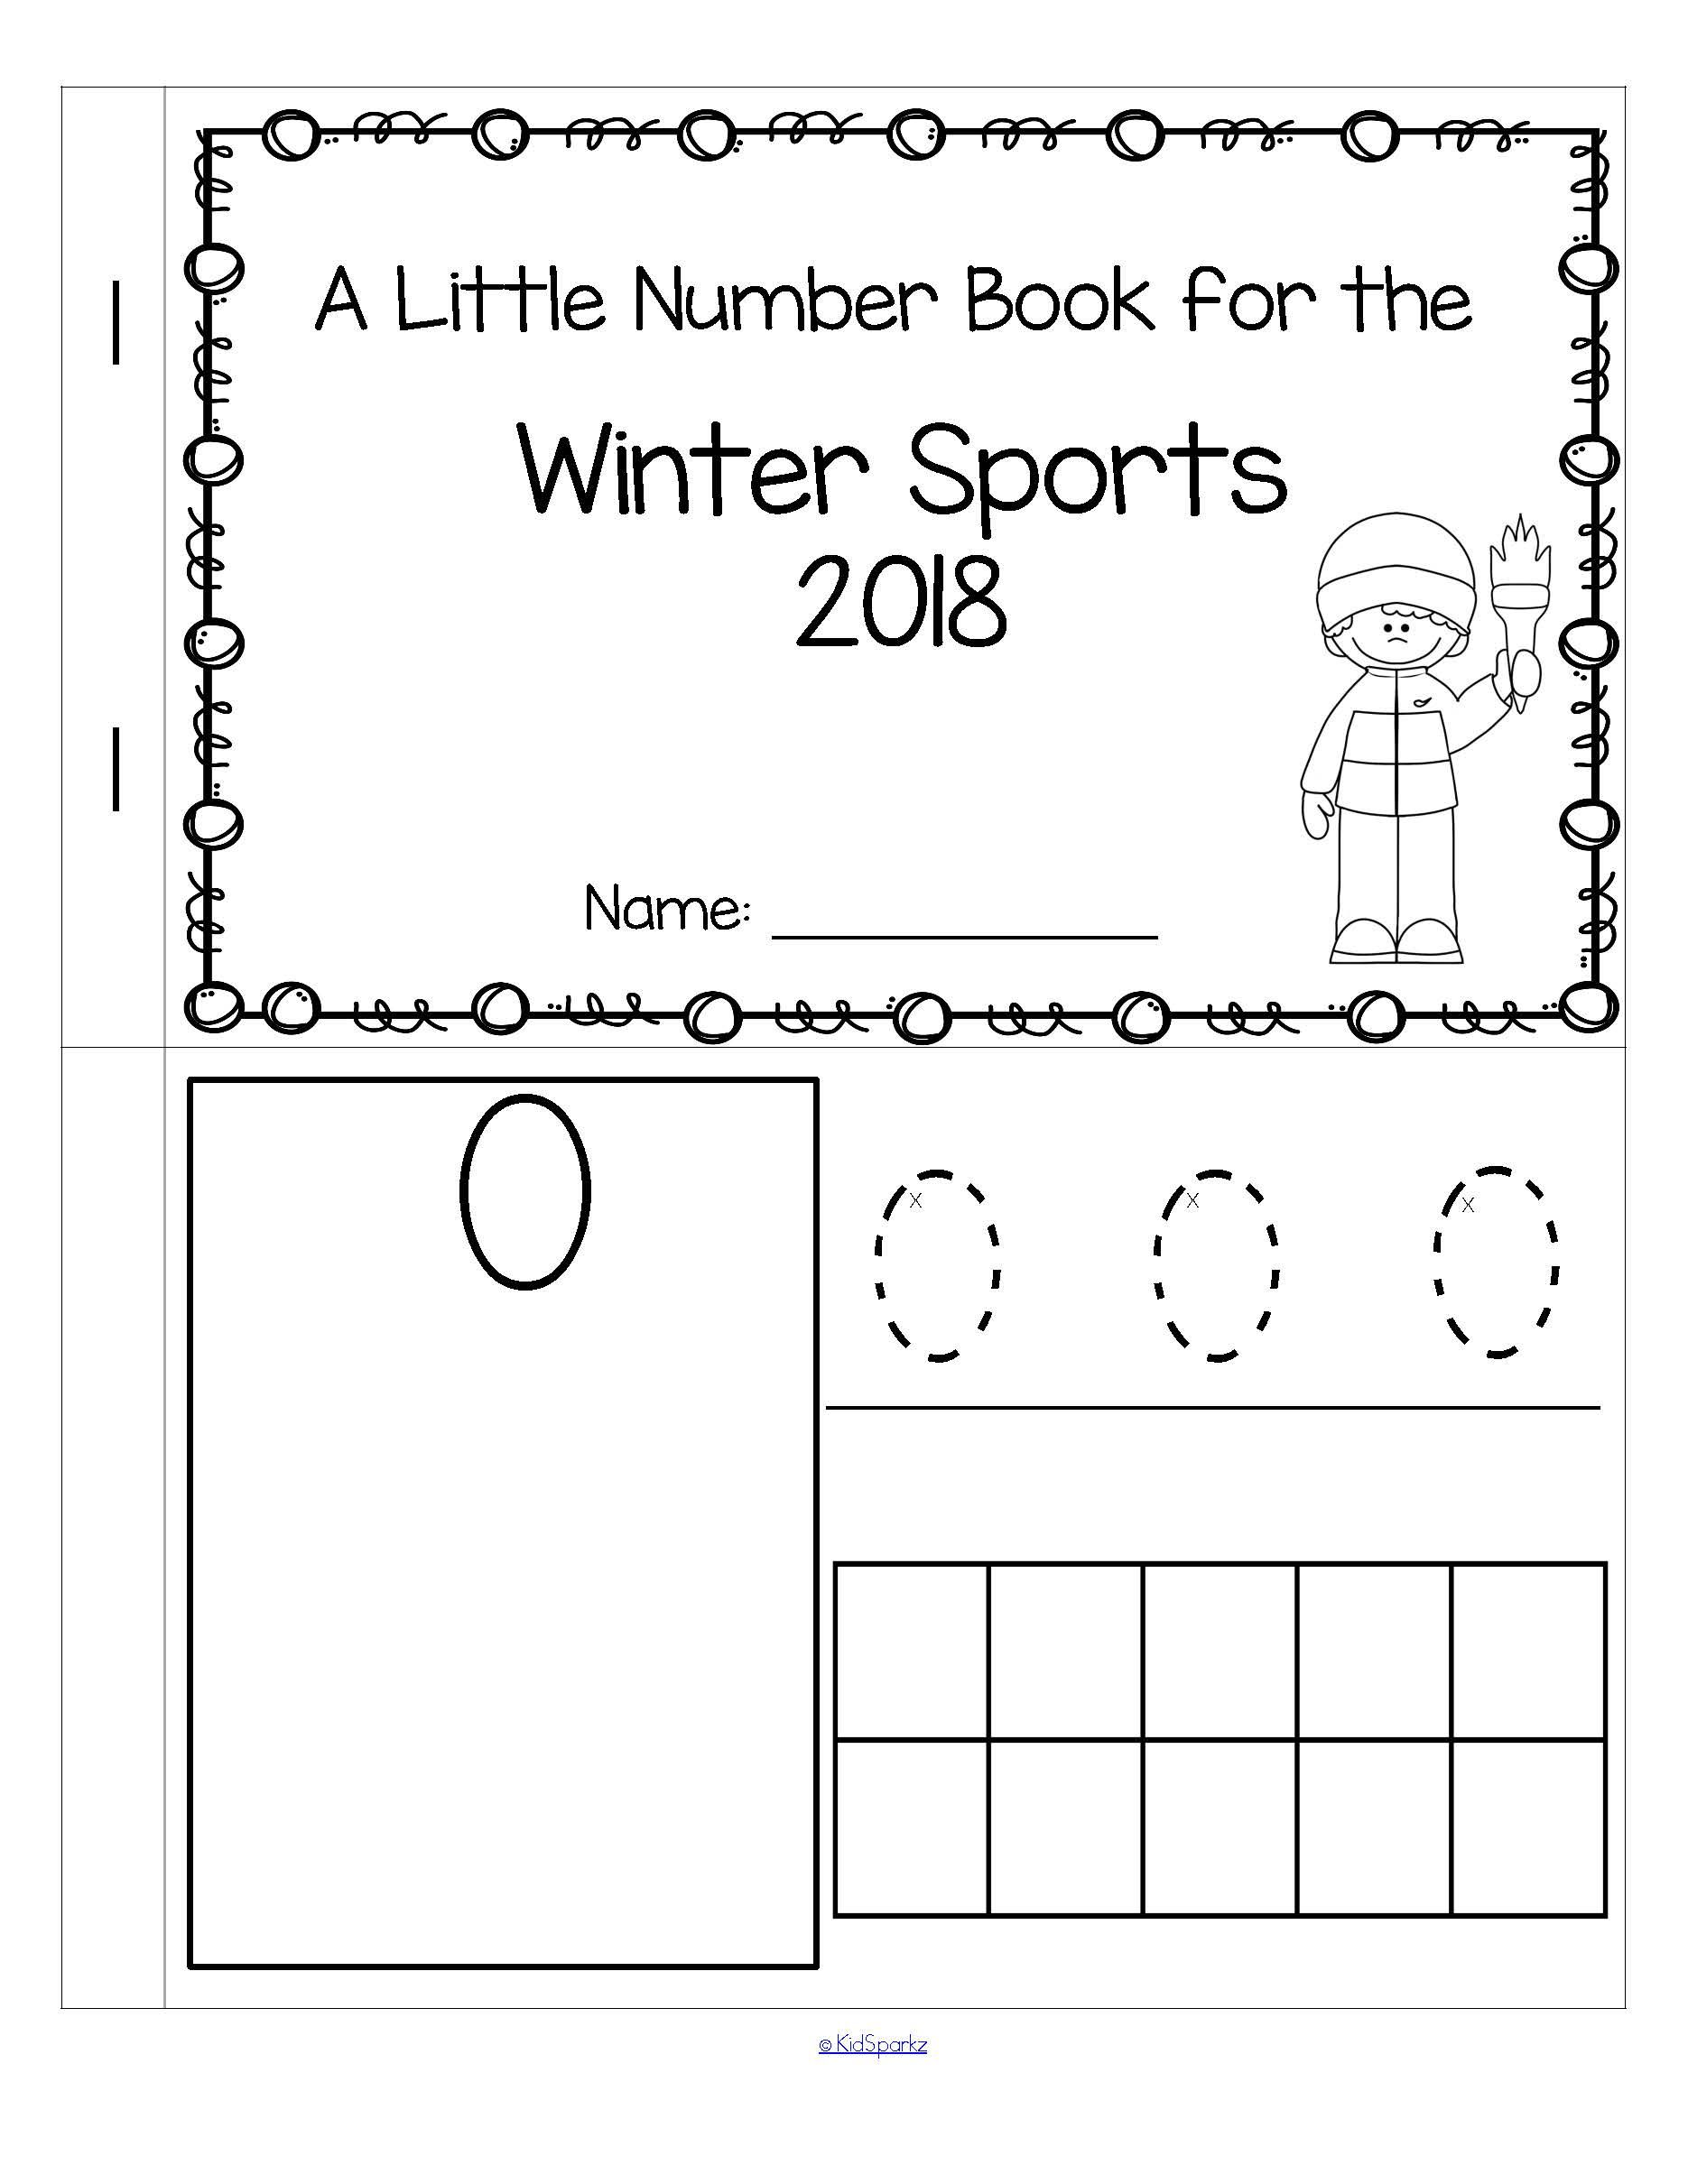 Free This Is A Booklet To Review And Practice Counting And